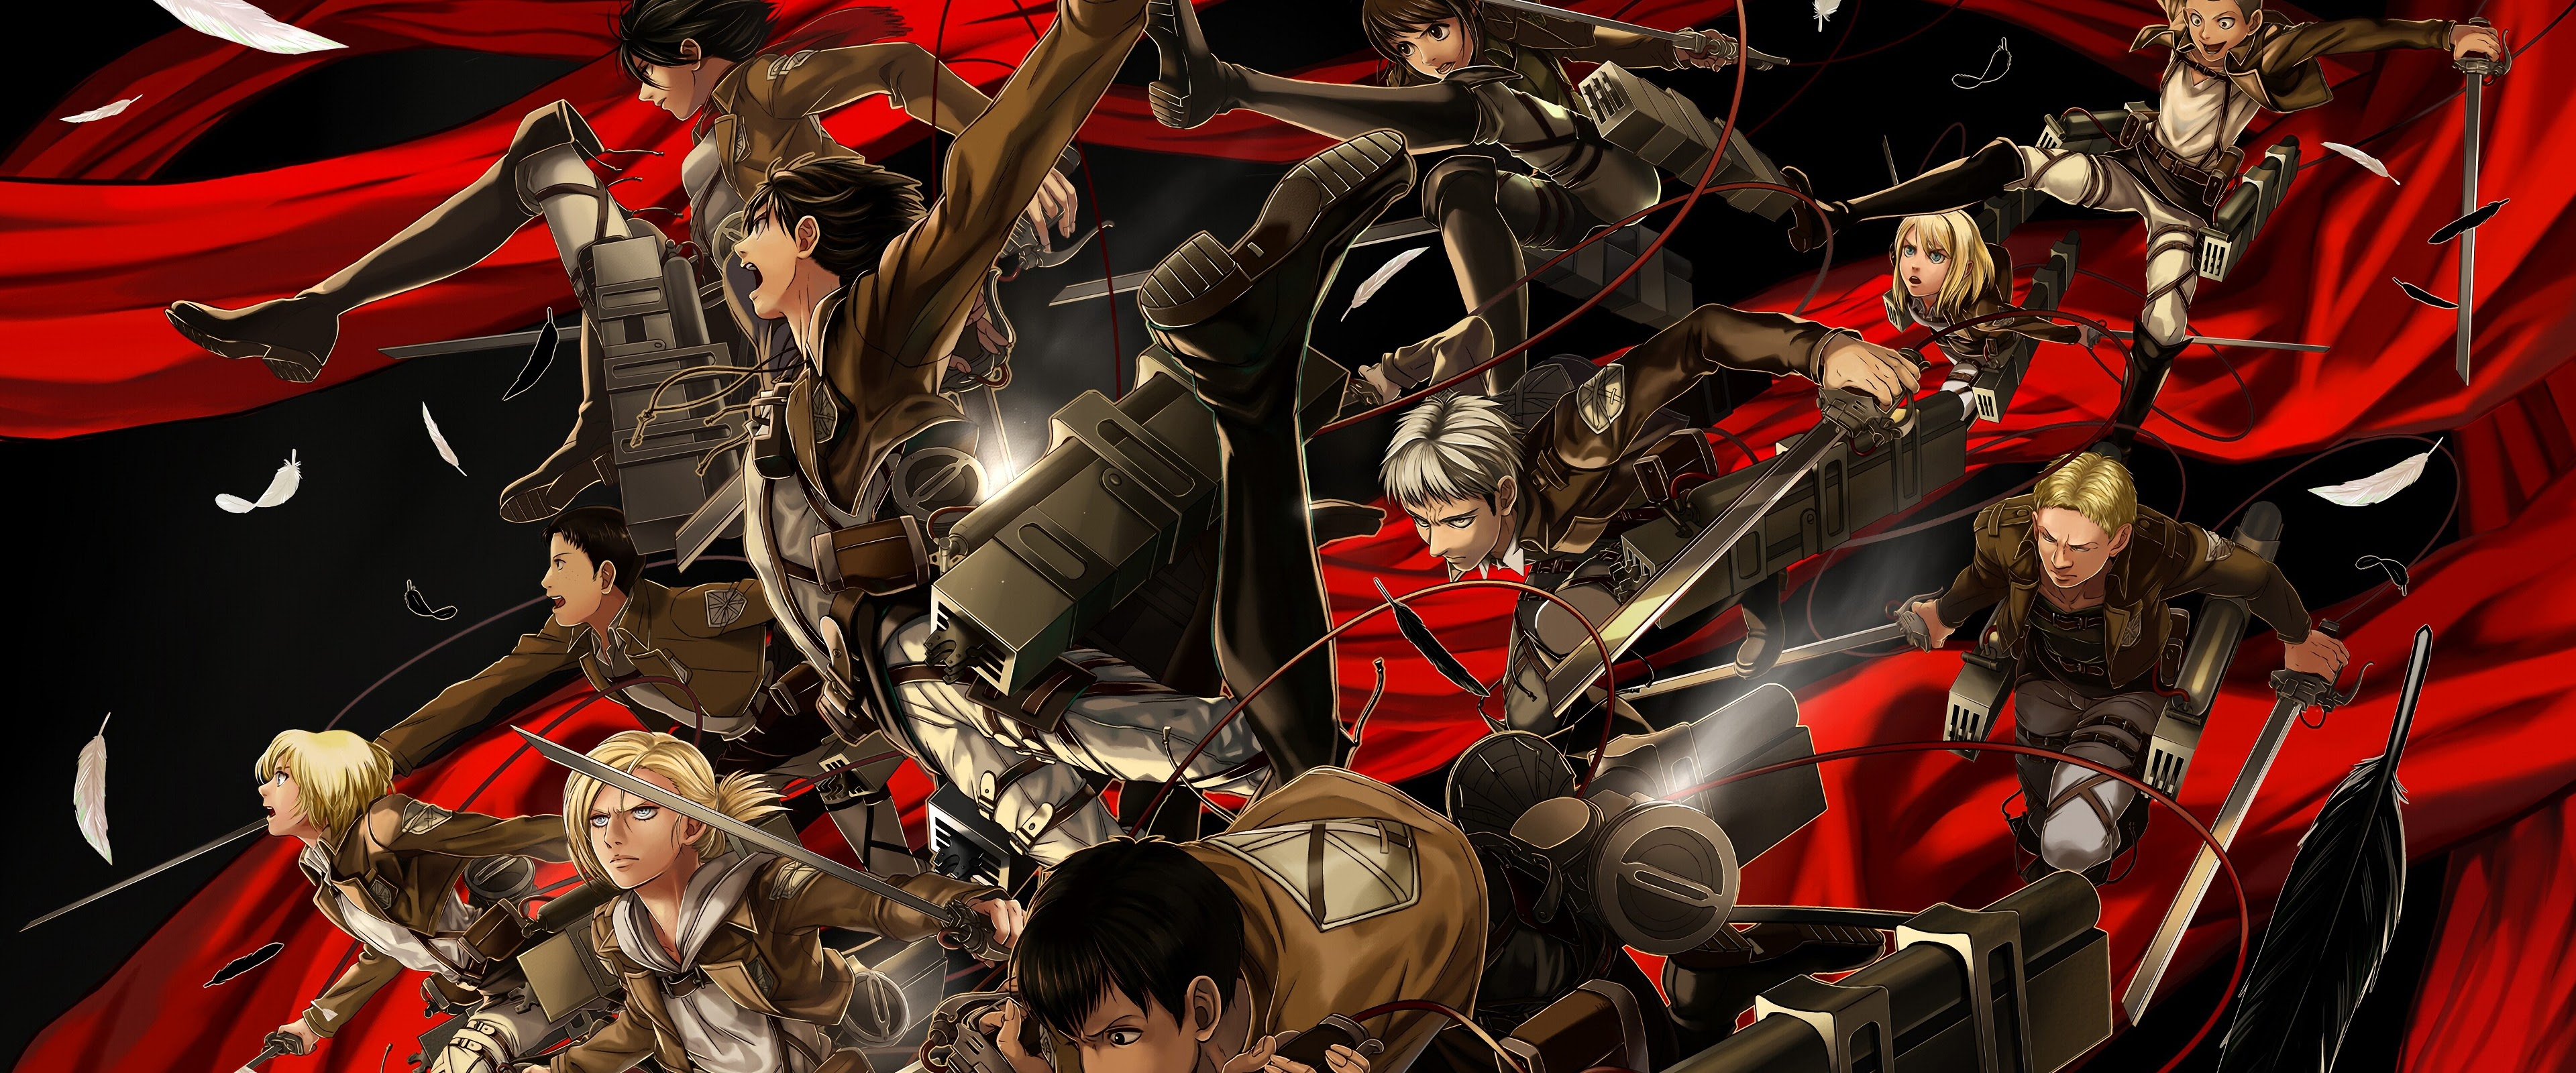 Attack On Titan 2560x1080 Backgrounds